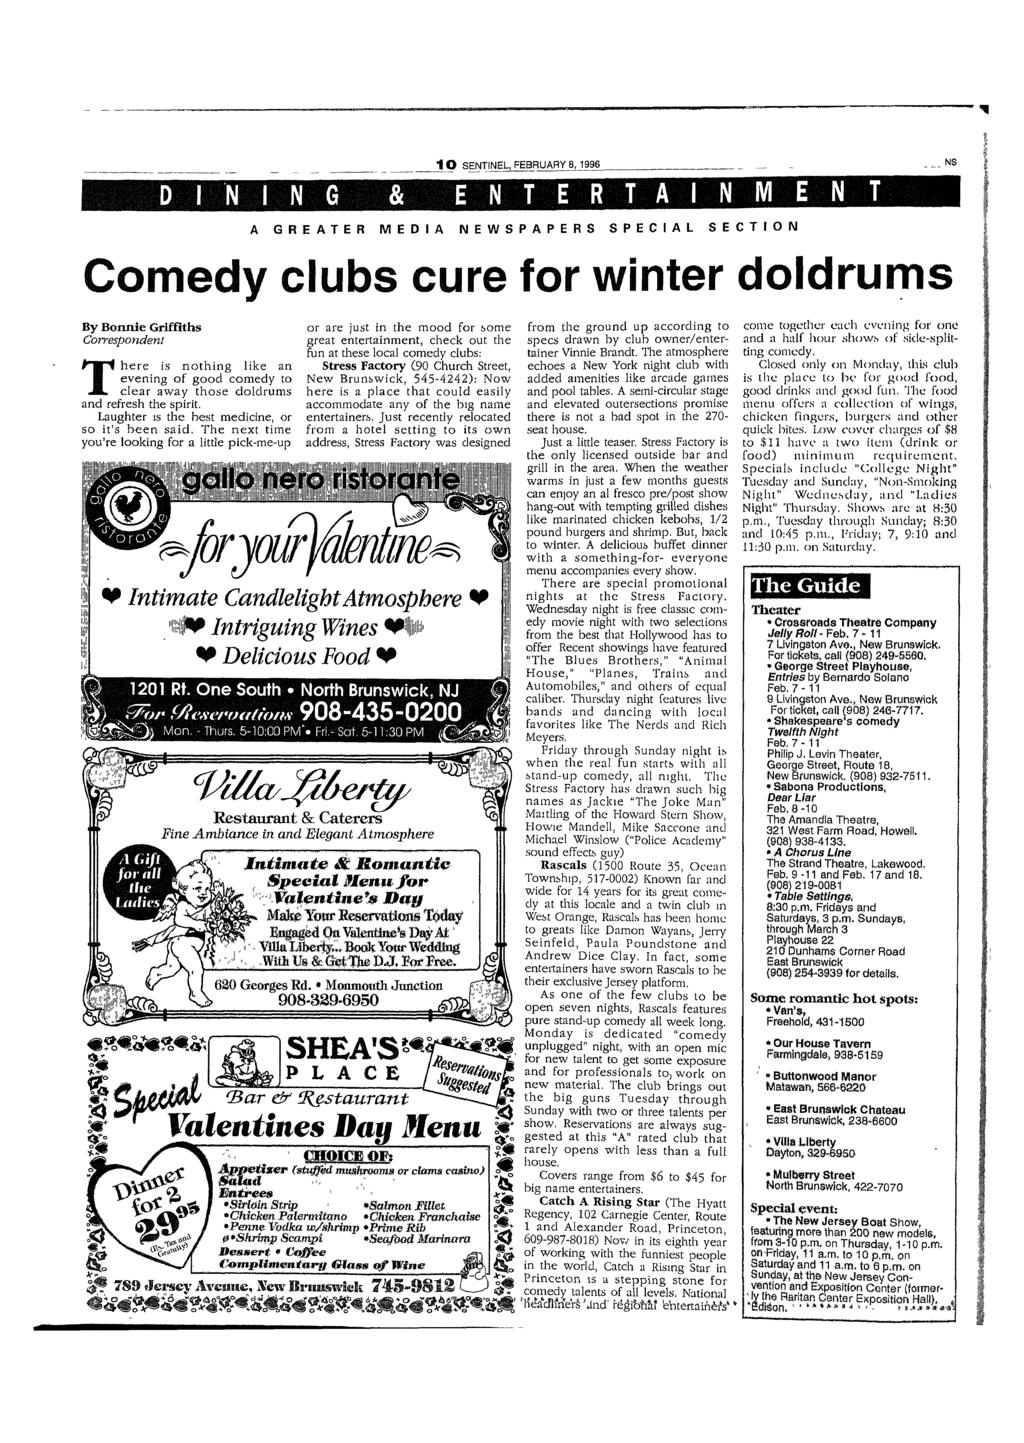 When The Cbs News Crew Arrived On West New Road Thursday Jan 25 Xl Combo Xtra Rp 89000 D I N G 1 O Sentinel February 81996 Ns En T E R A M W S P C L Comedy